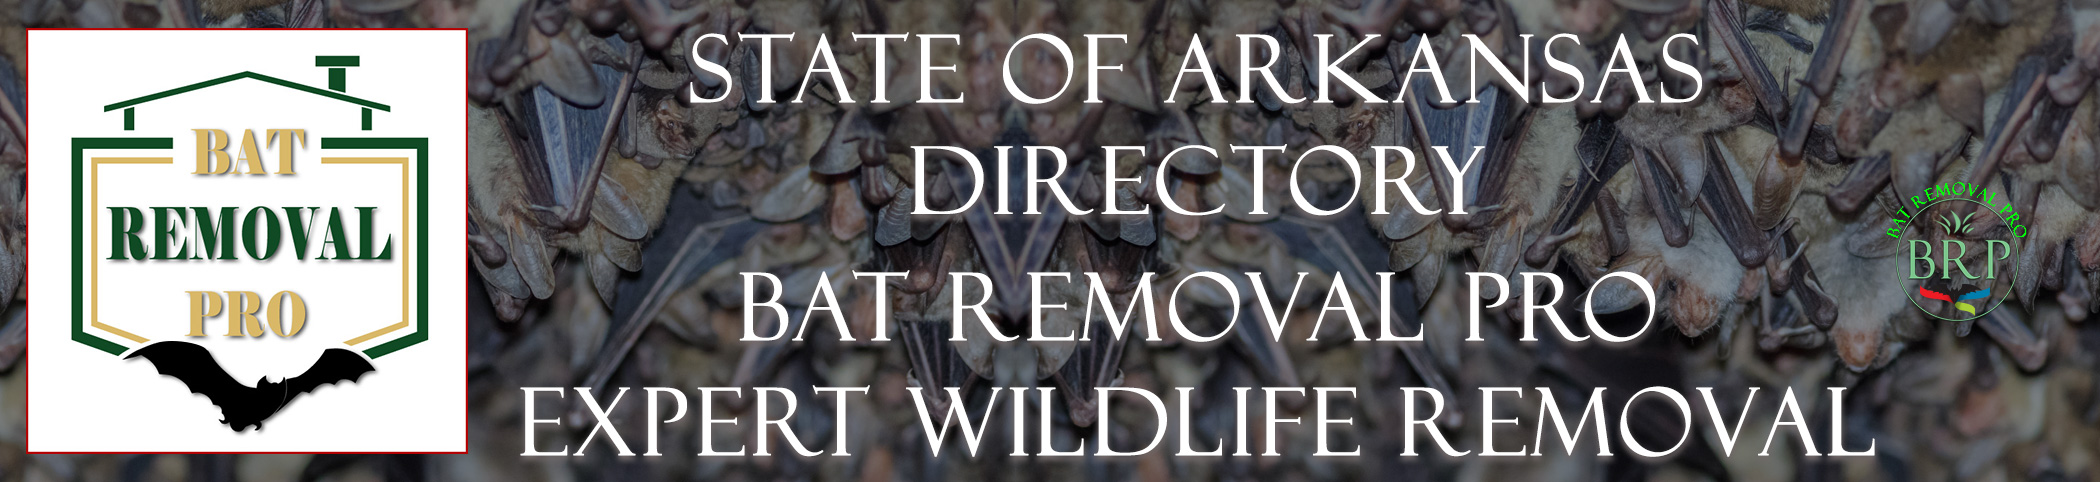 arkansas-bat-removal-at-bat-removal-pro-header-image